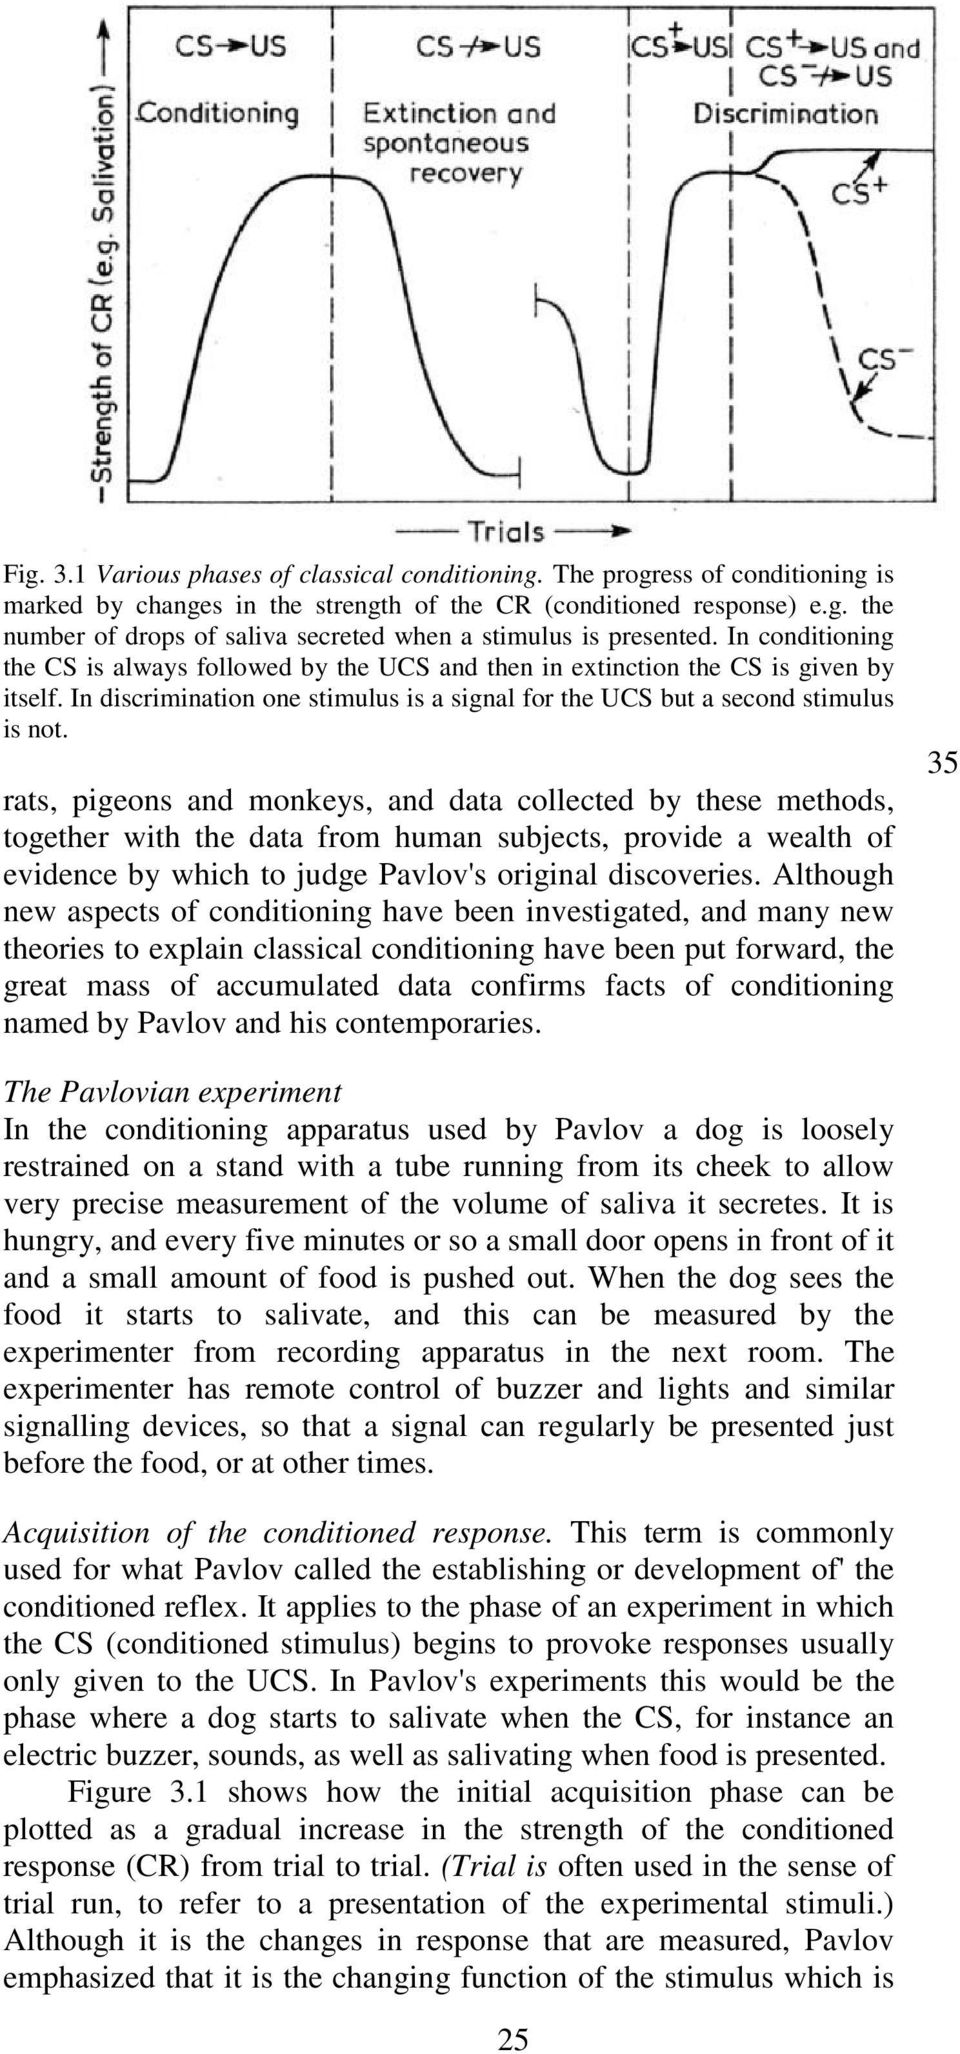 rats, pigeons and monkeys, and data collected by these methods, together with the data from human subjects, provide a wealth of evidence by which to judge Pavlov's original discoveries.